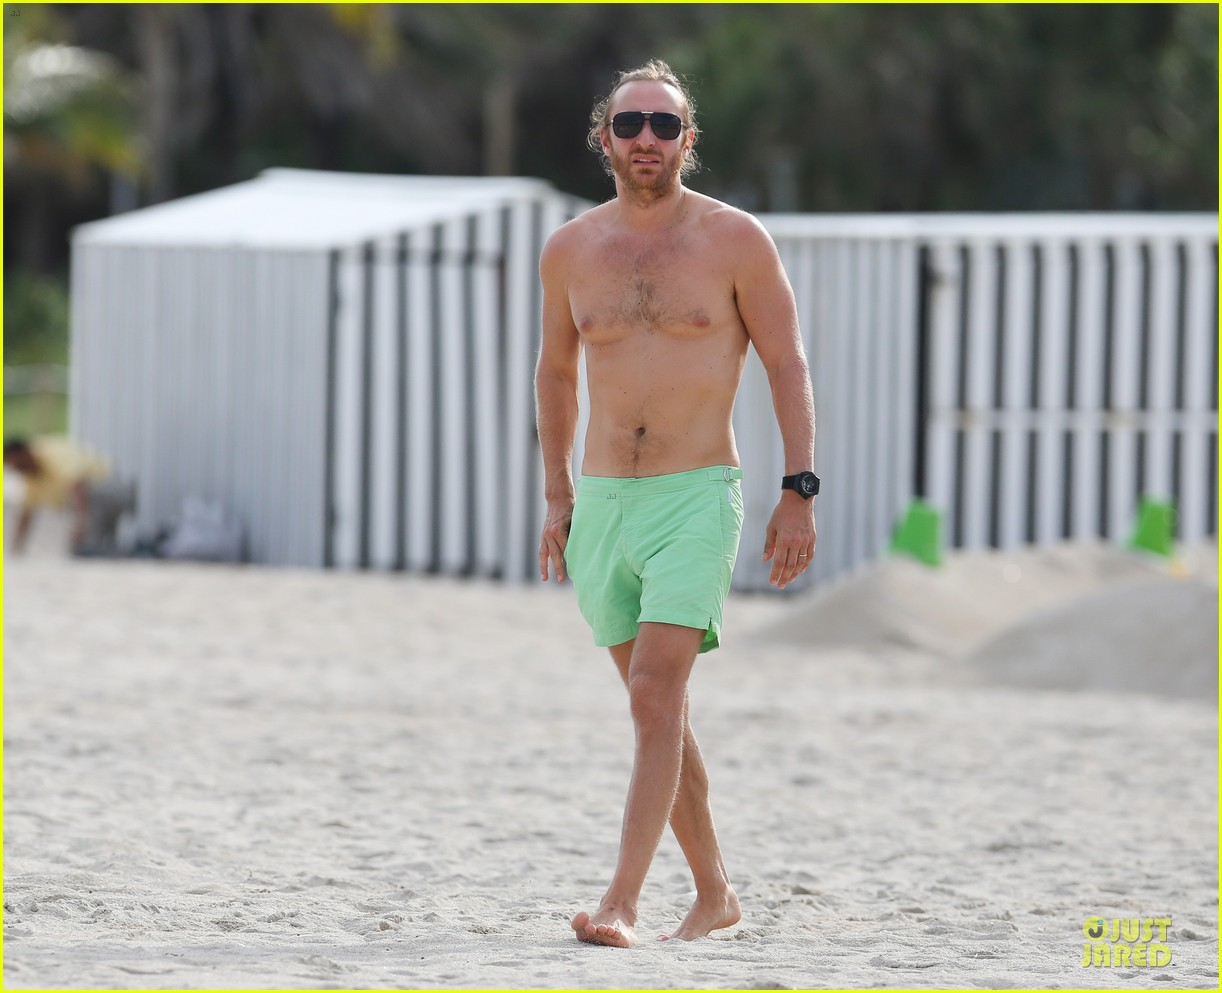 david-guetta-shirtless-beach-mystery-woman-01